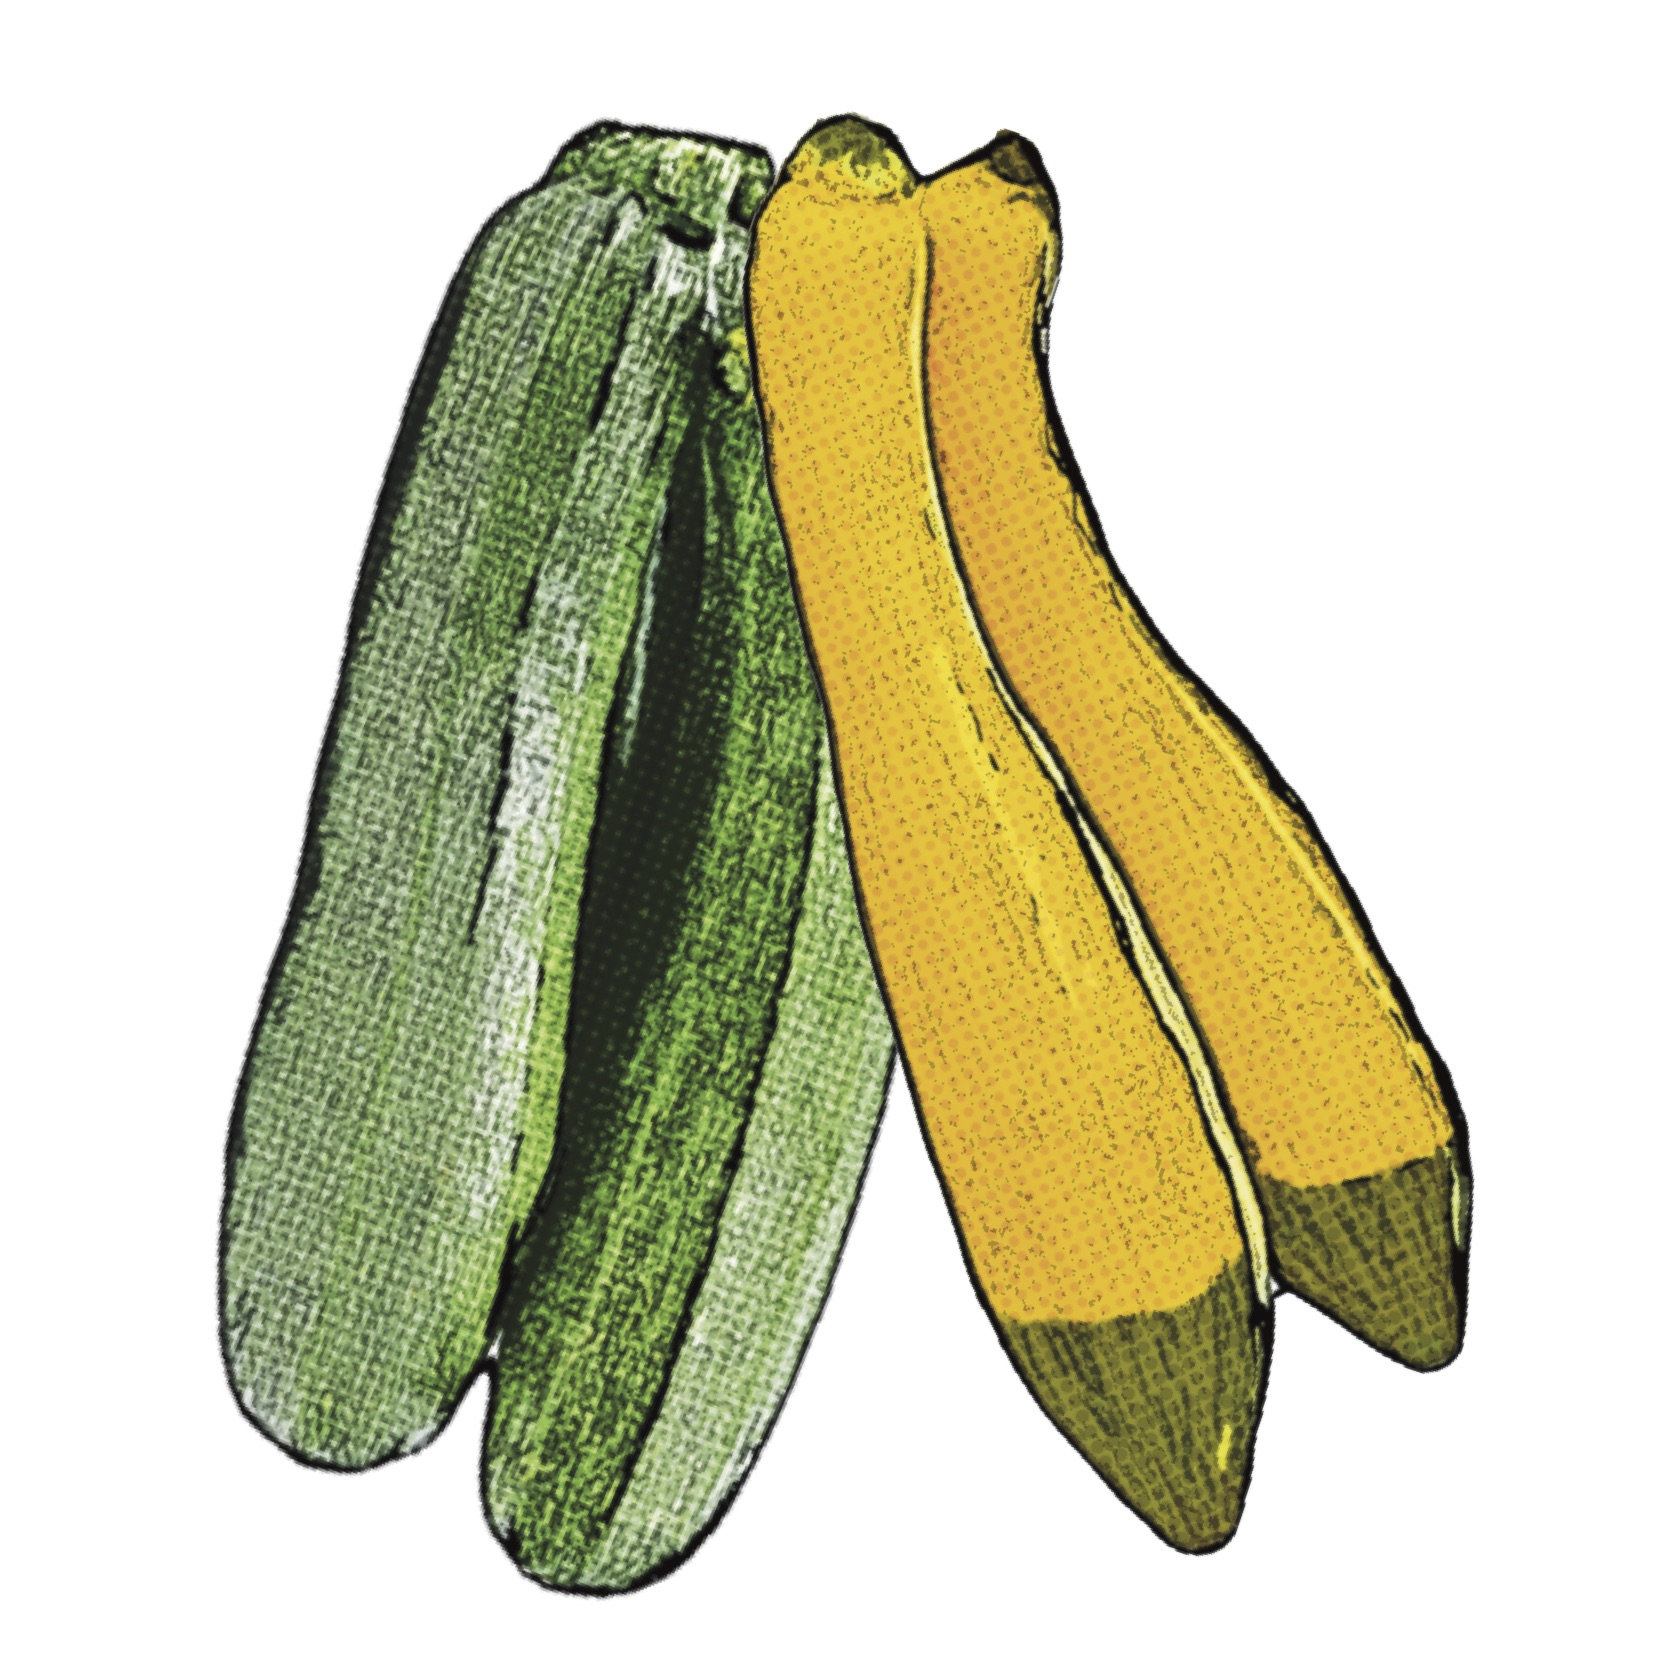 Find Summer Squash Recipes